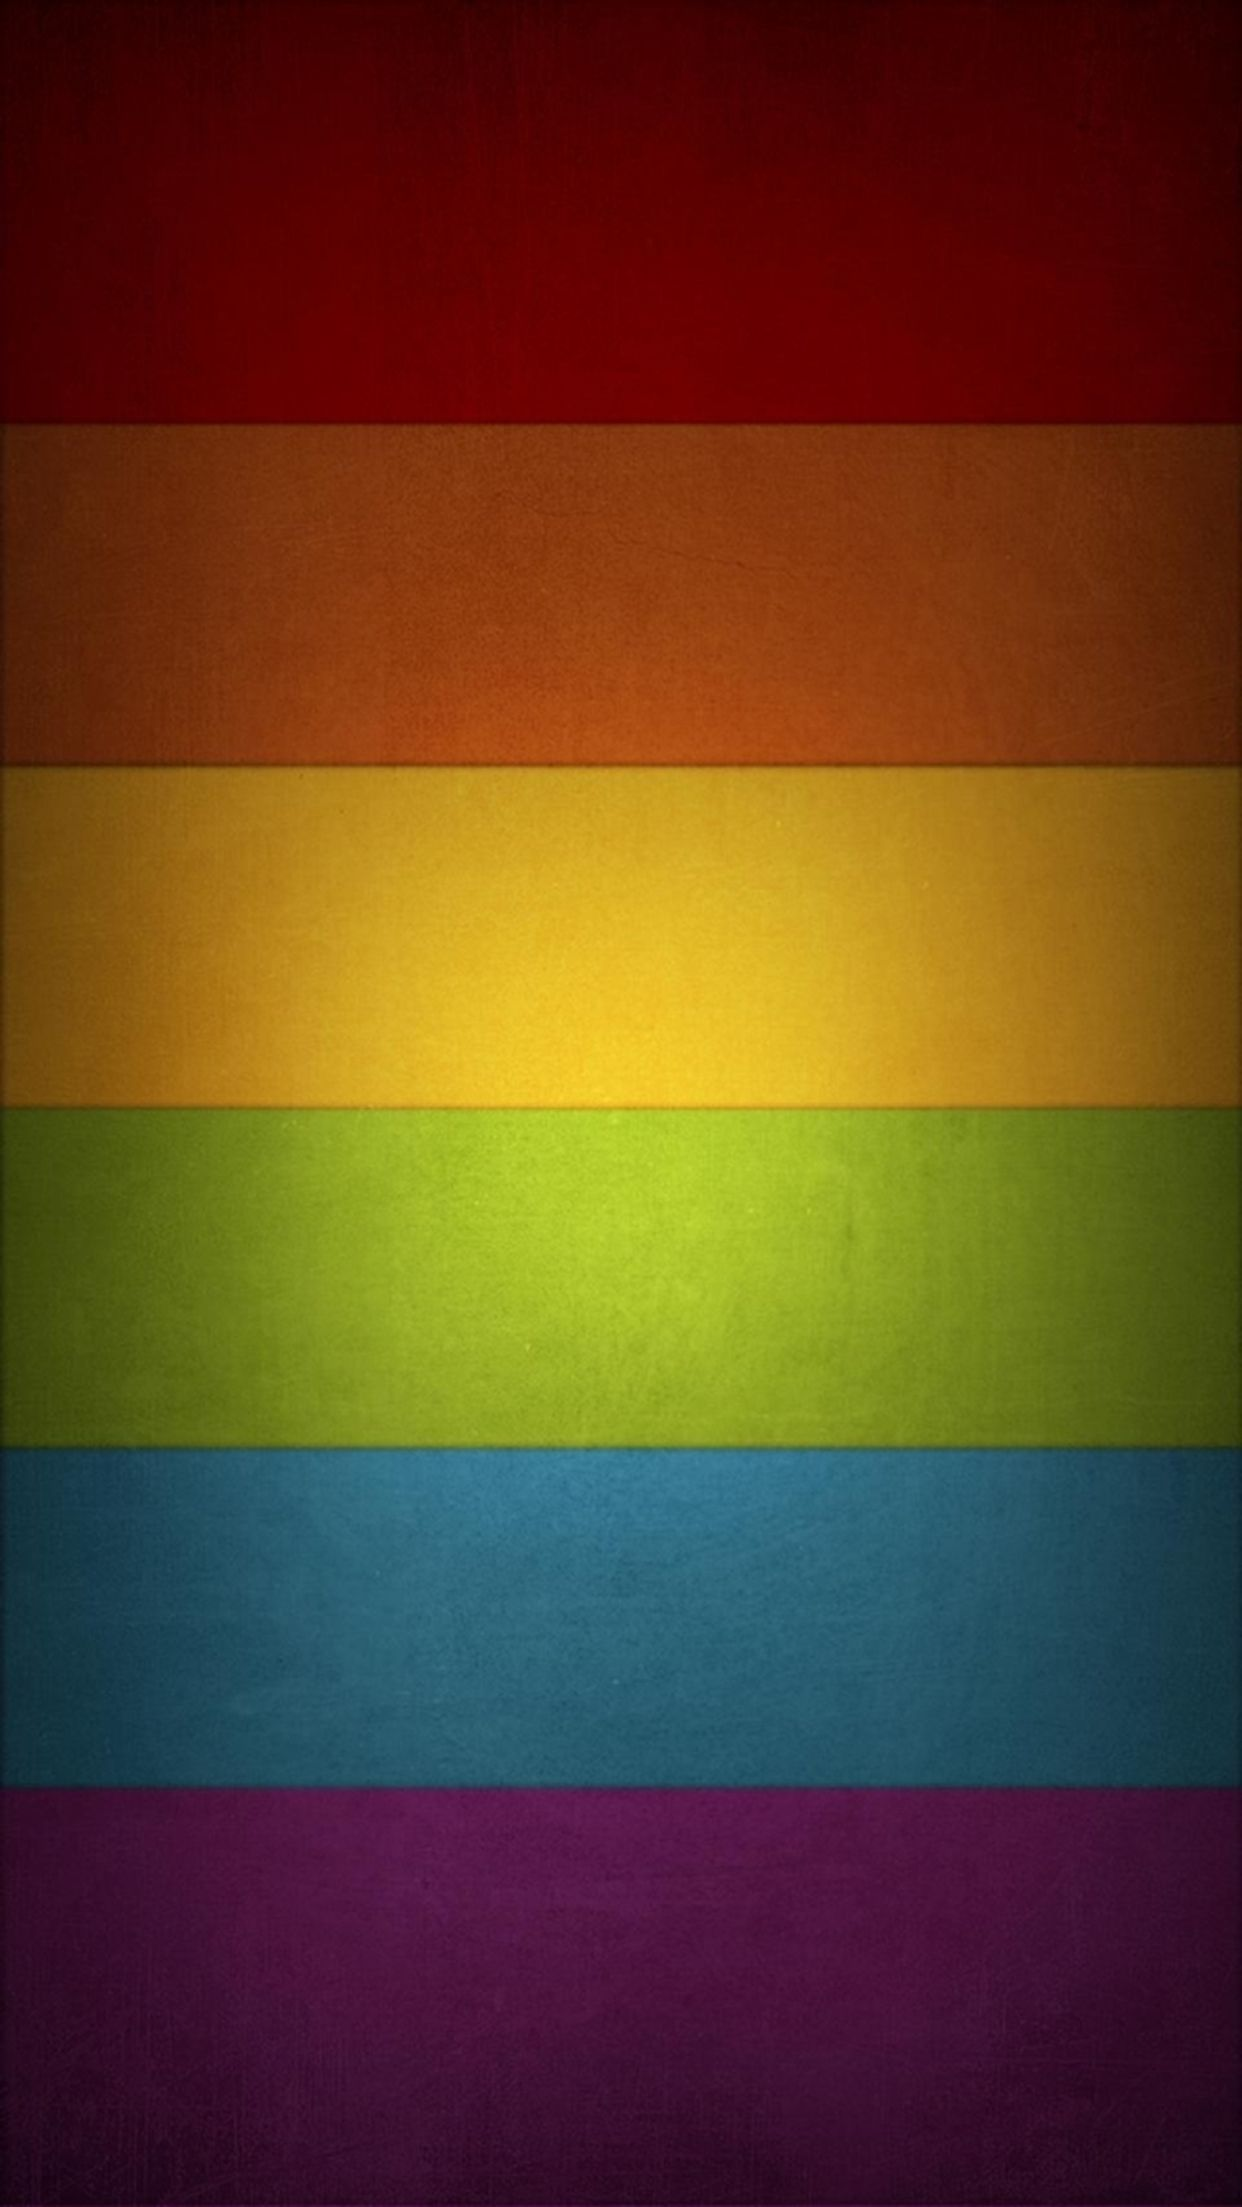 Pride Iphone Wallpapers Top Free Pride Iphone Backgrounds